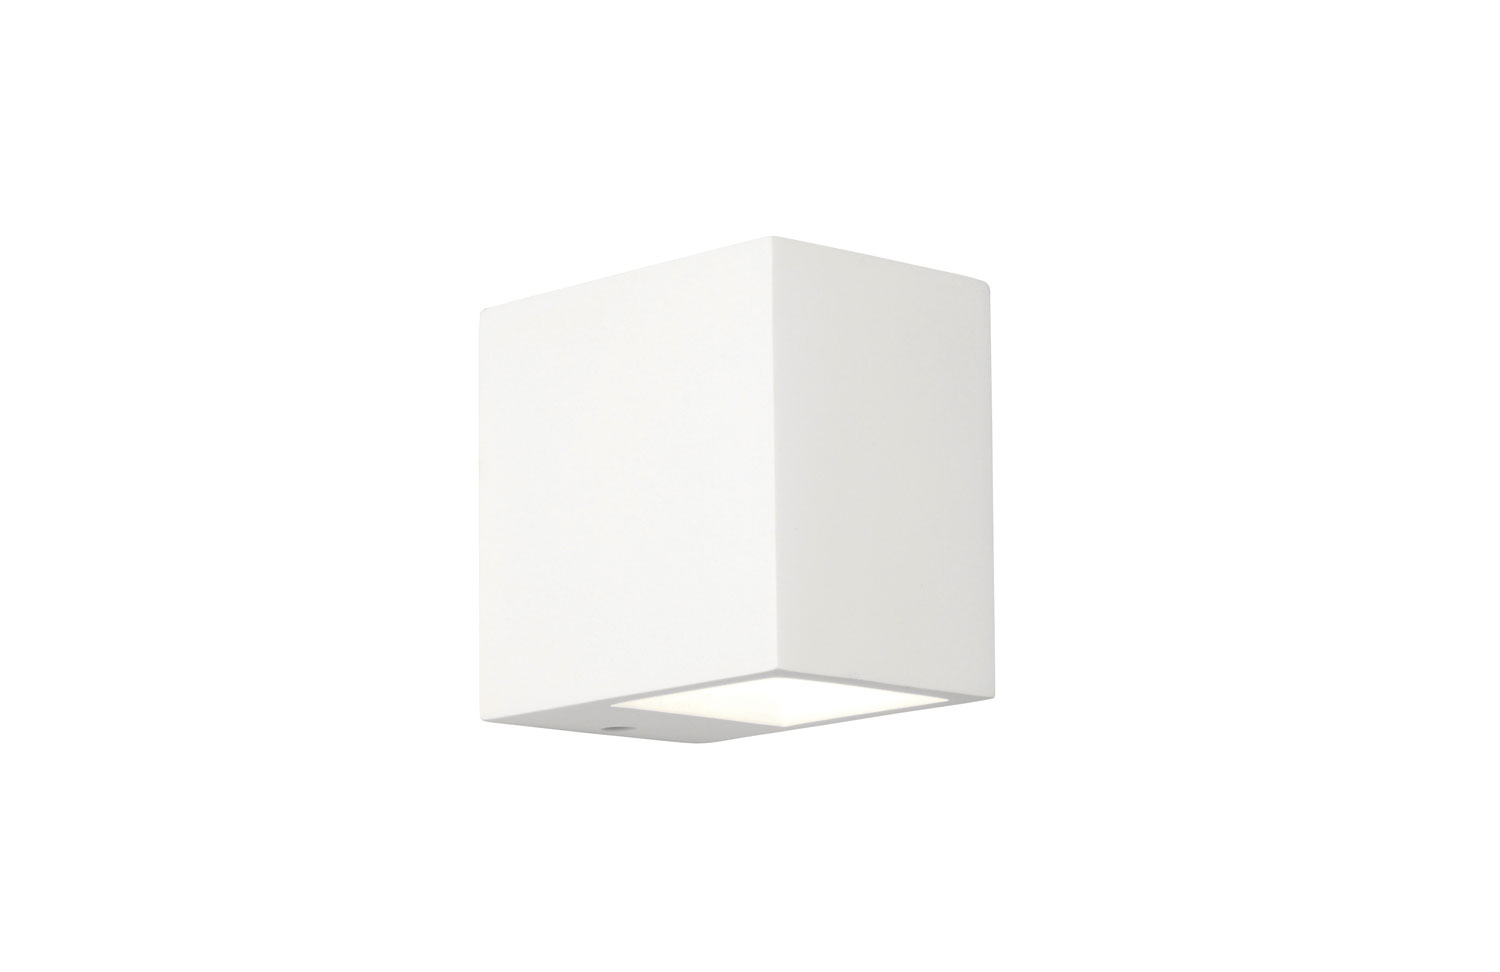 Mosto White Plaster Wall Light, Paintable Rectangular Wall Fitting 40W G9 IP20 AX0813